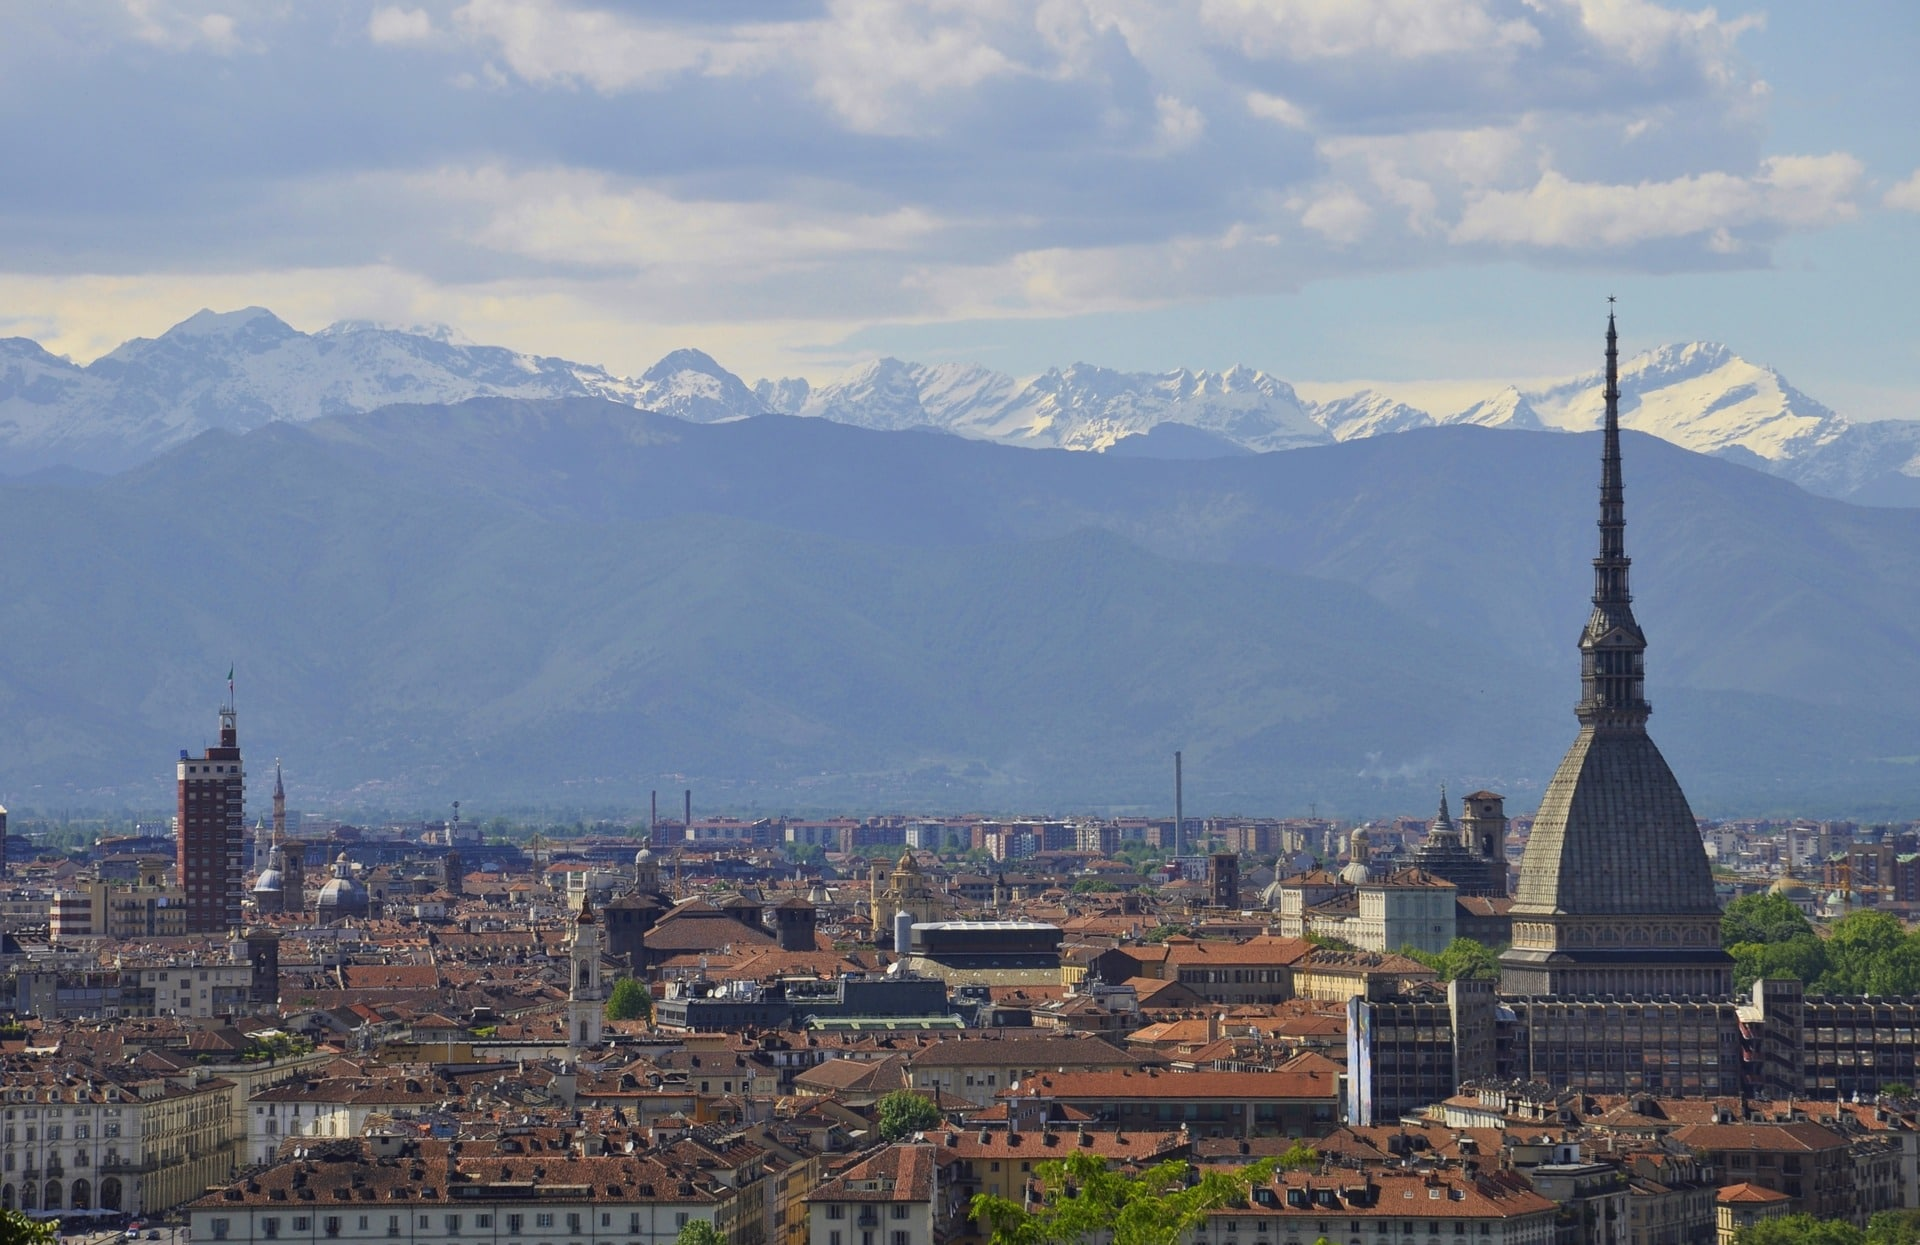 Torino and the Alps